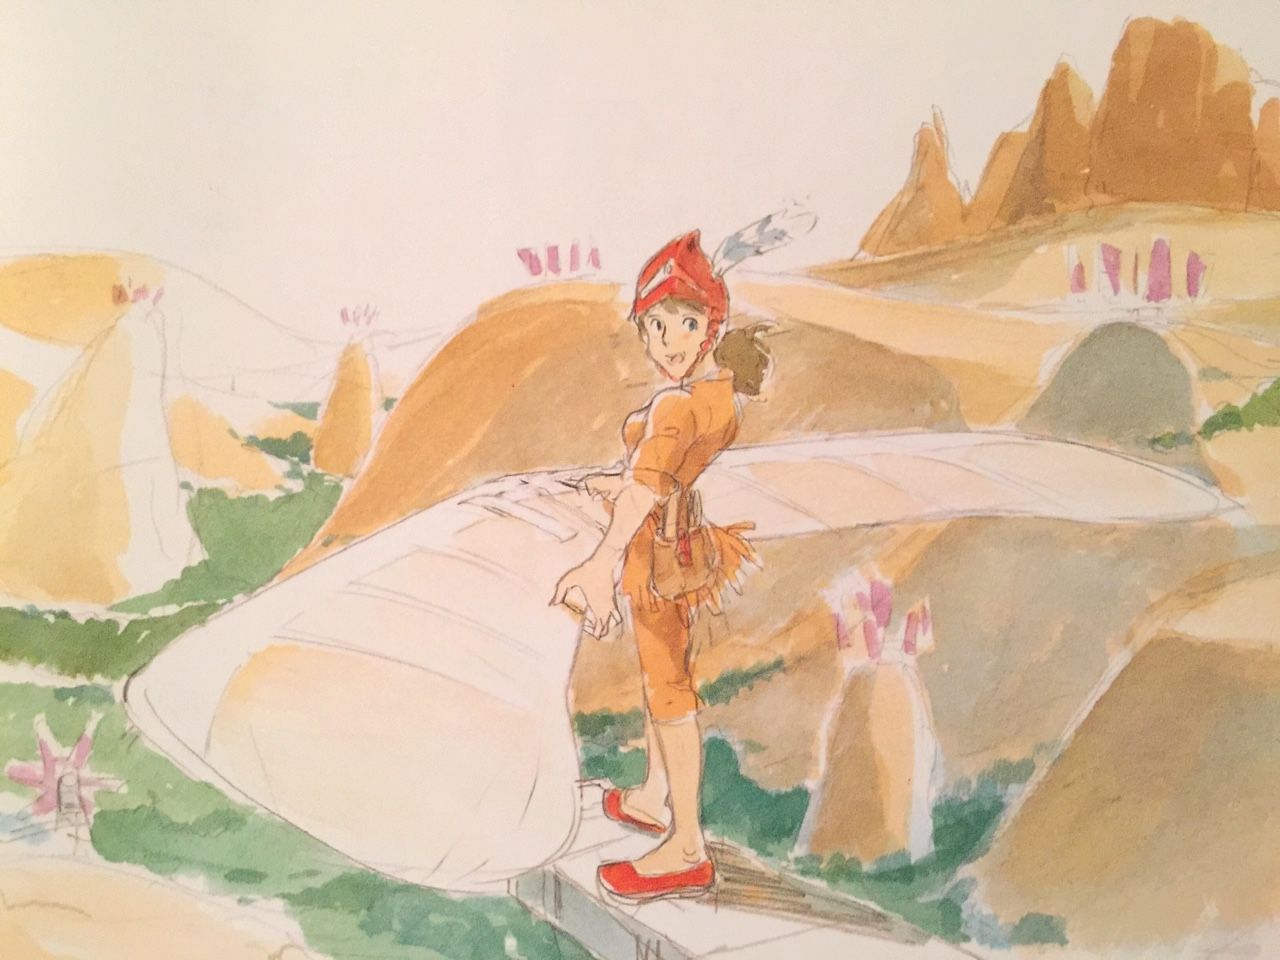 Hayao-Miyazaki-The-Art-Of-Nausica-Of-The-Valley-Of-The-Wind-Watercolor-Impressions-nausicaa-of-the-valley-of-the-wind-39381874-1280-960.jpg